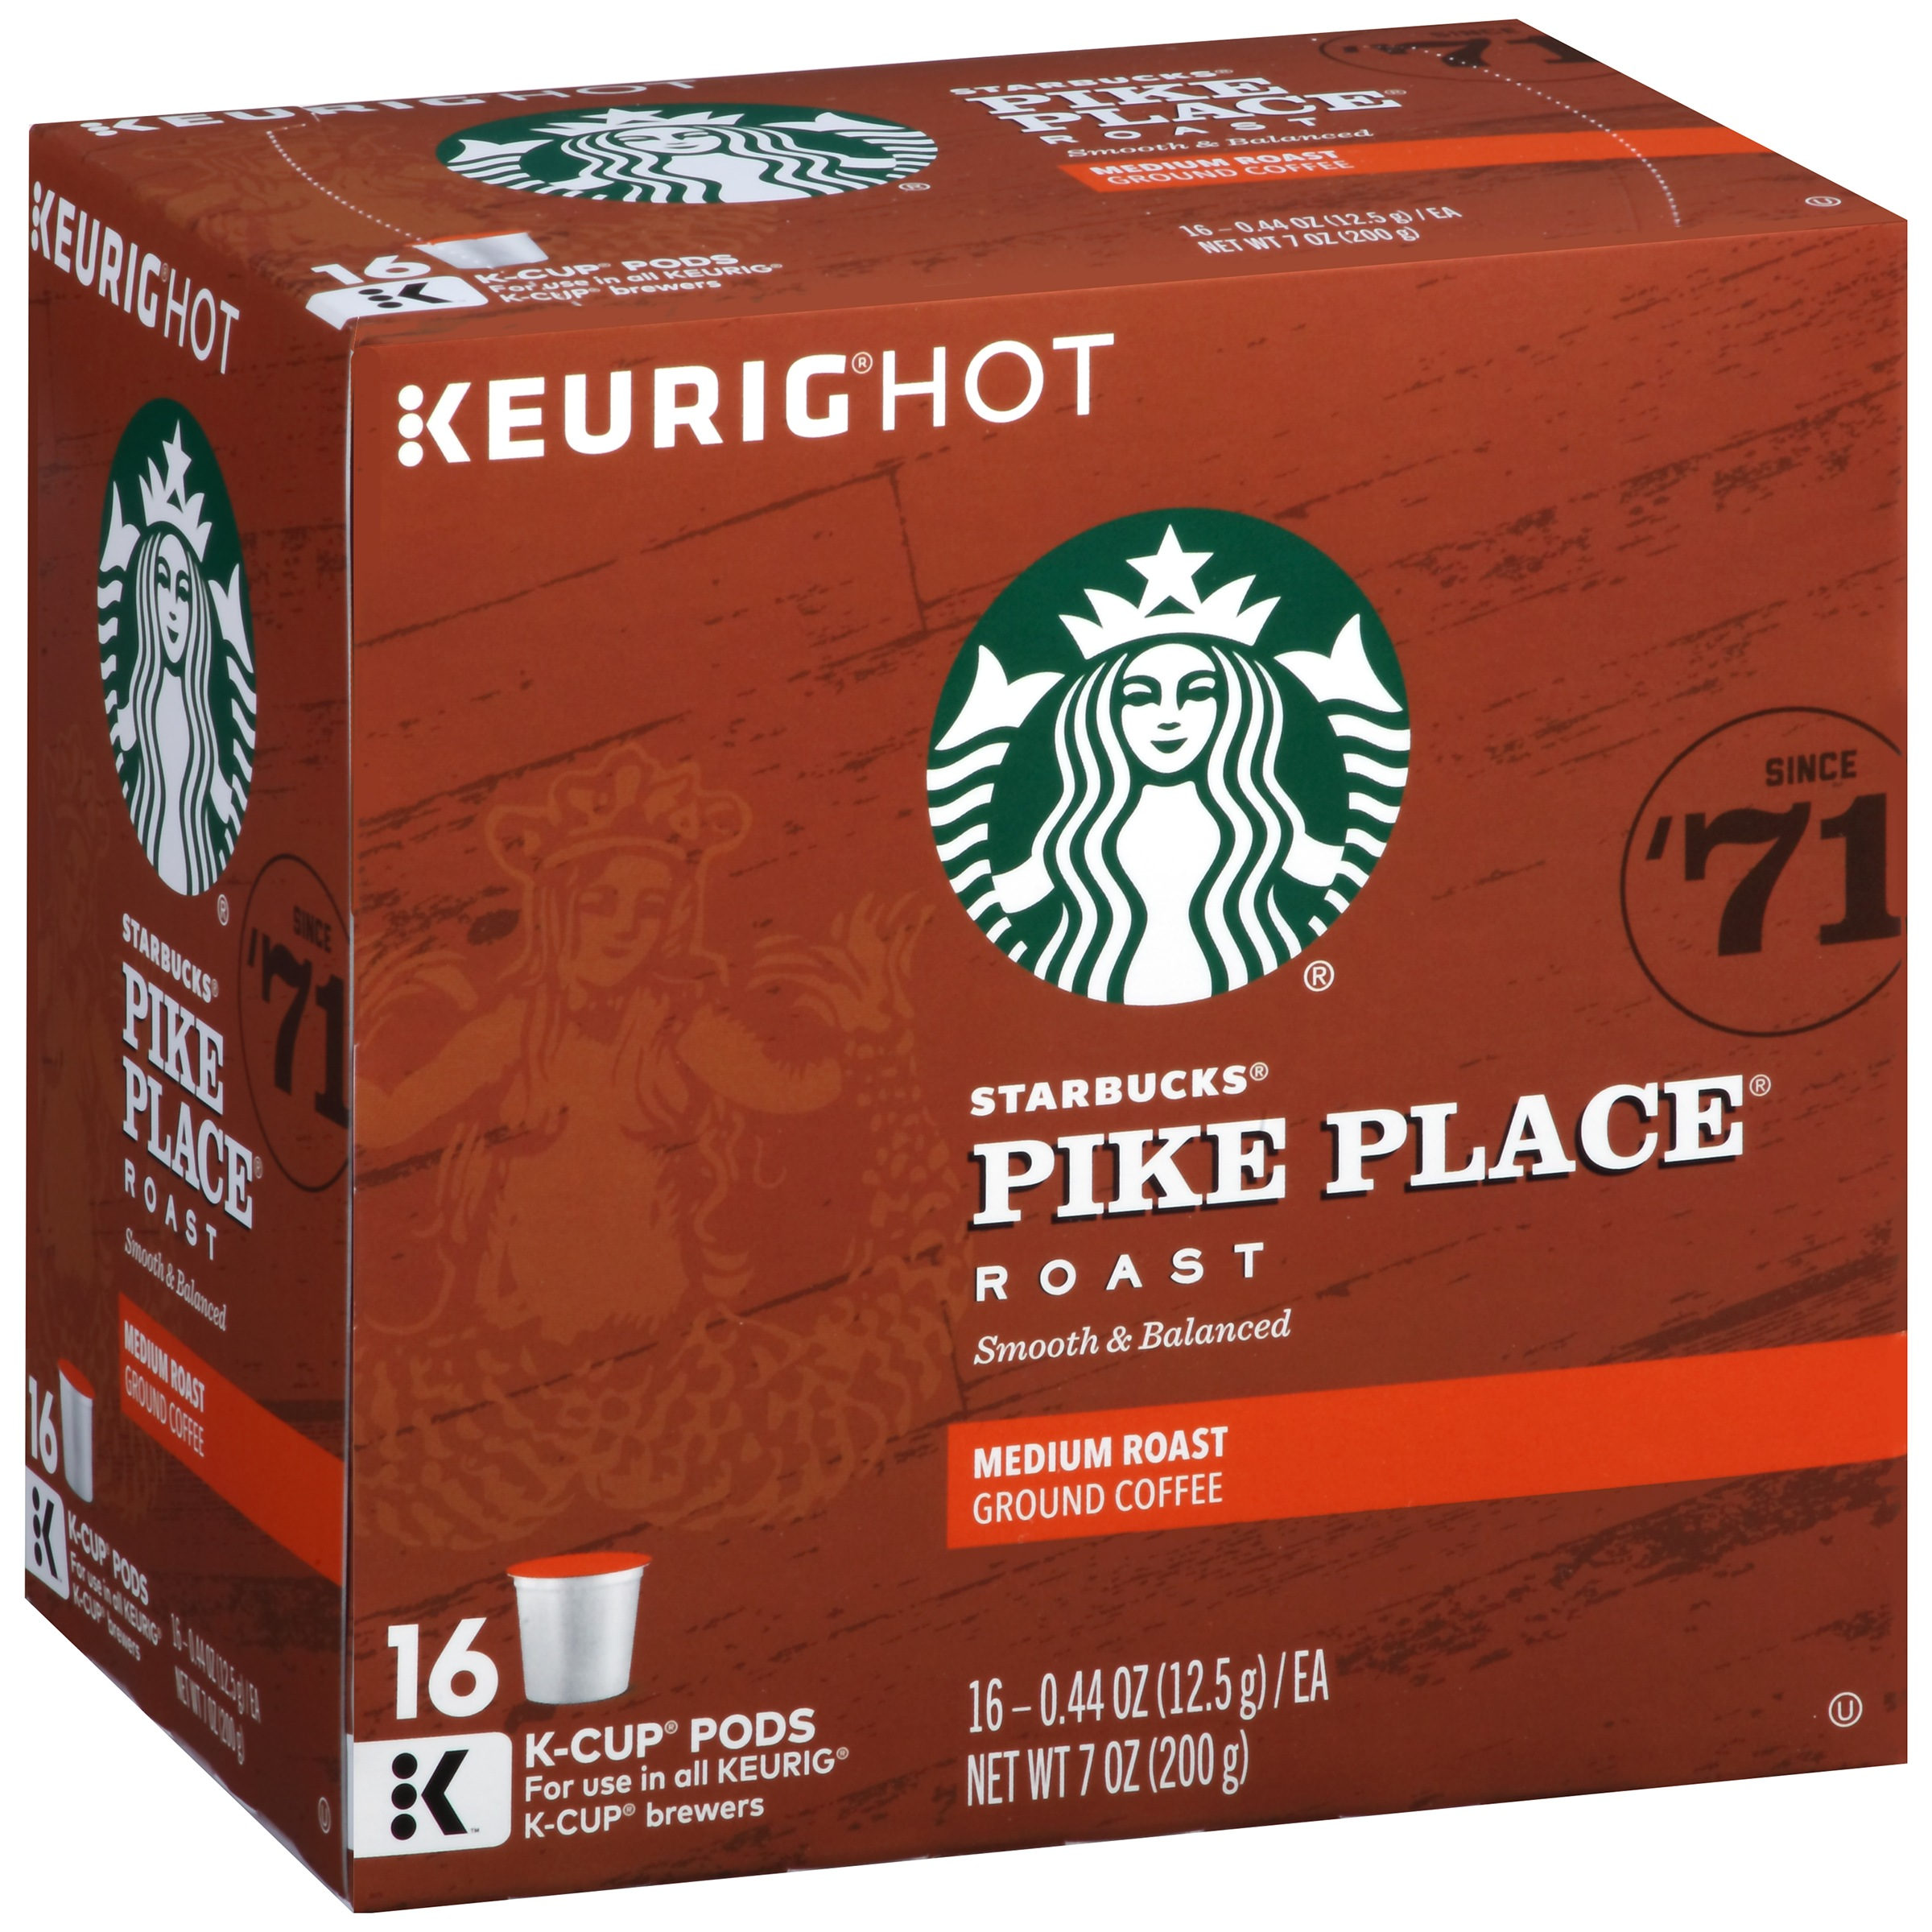 Starbucks Pike Place Medium Roast Coffee, 16 Ct K-Cups